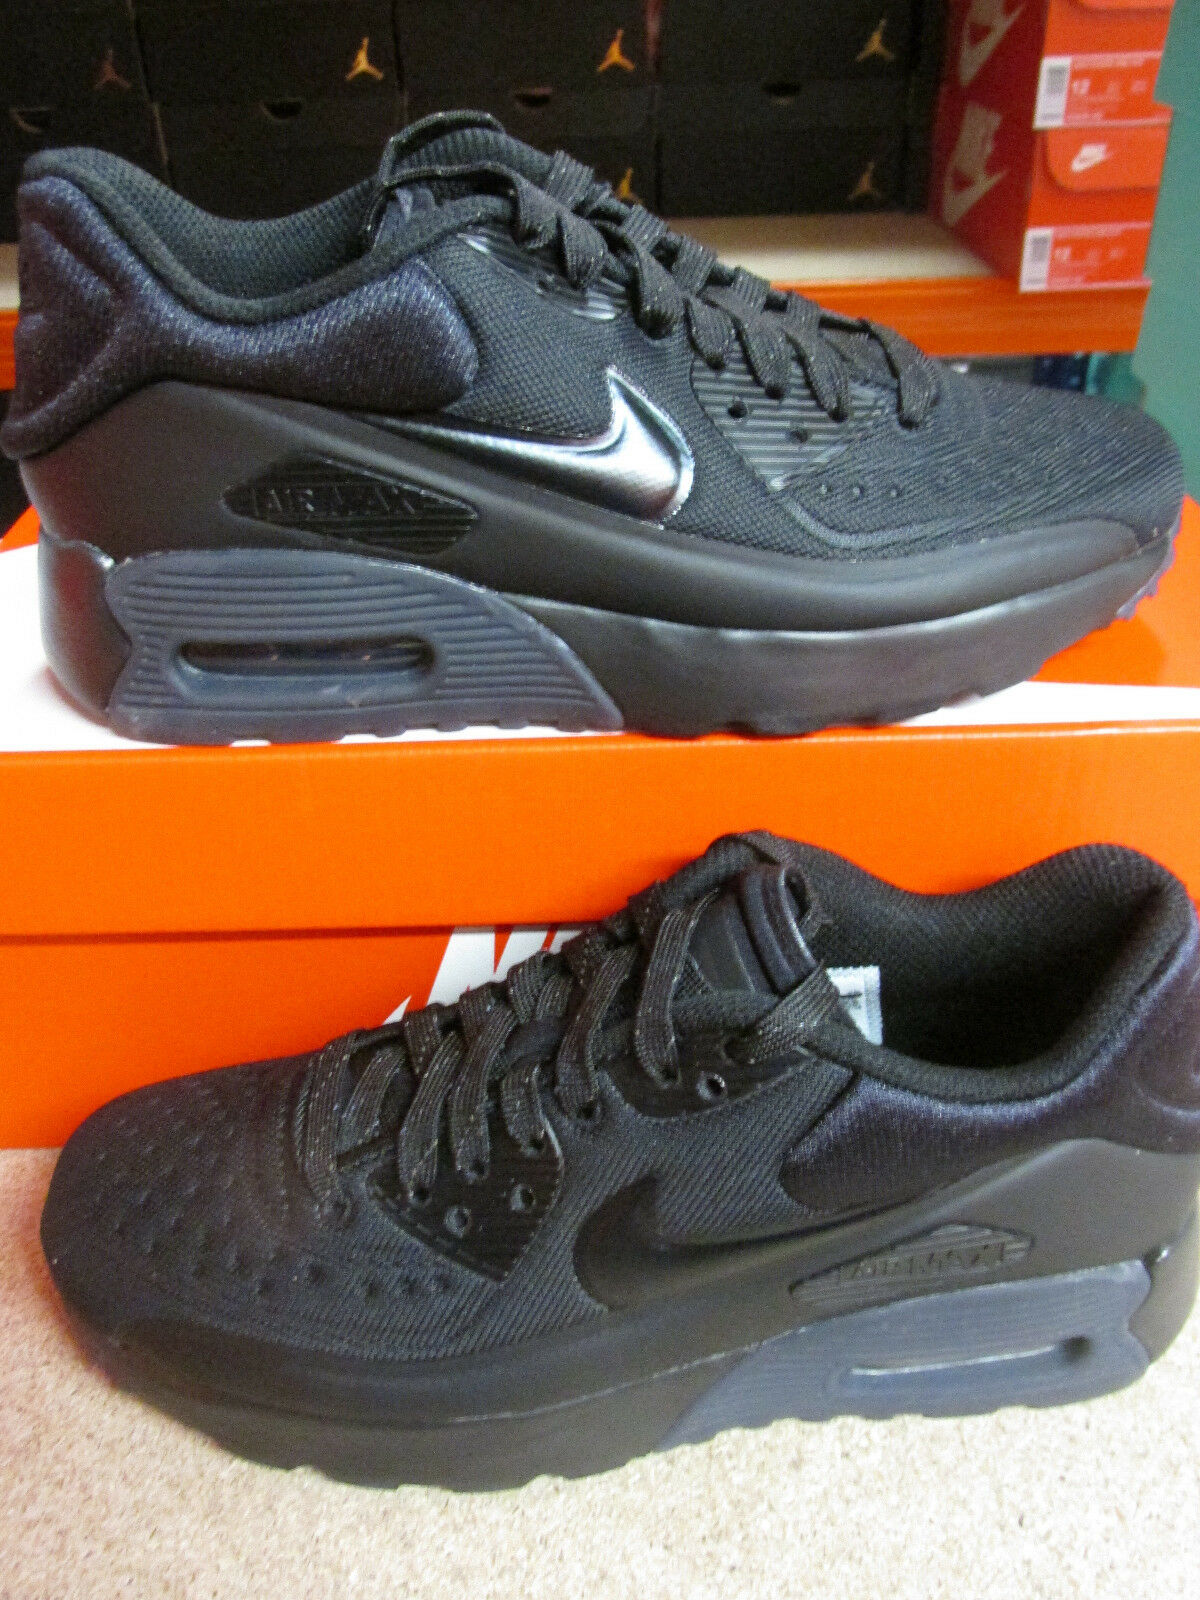 Details about $110 Nike Air Max 90 Ultra SE GS Youth Size 6.5Y BlackVoltGrey 844599 006 NEW